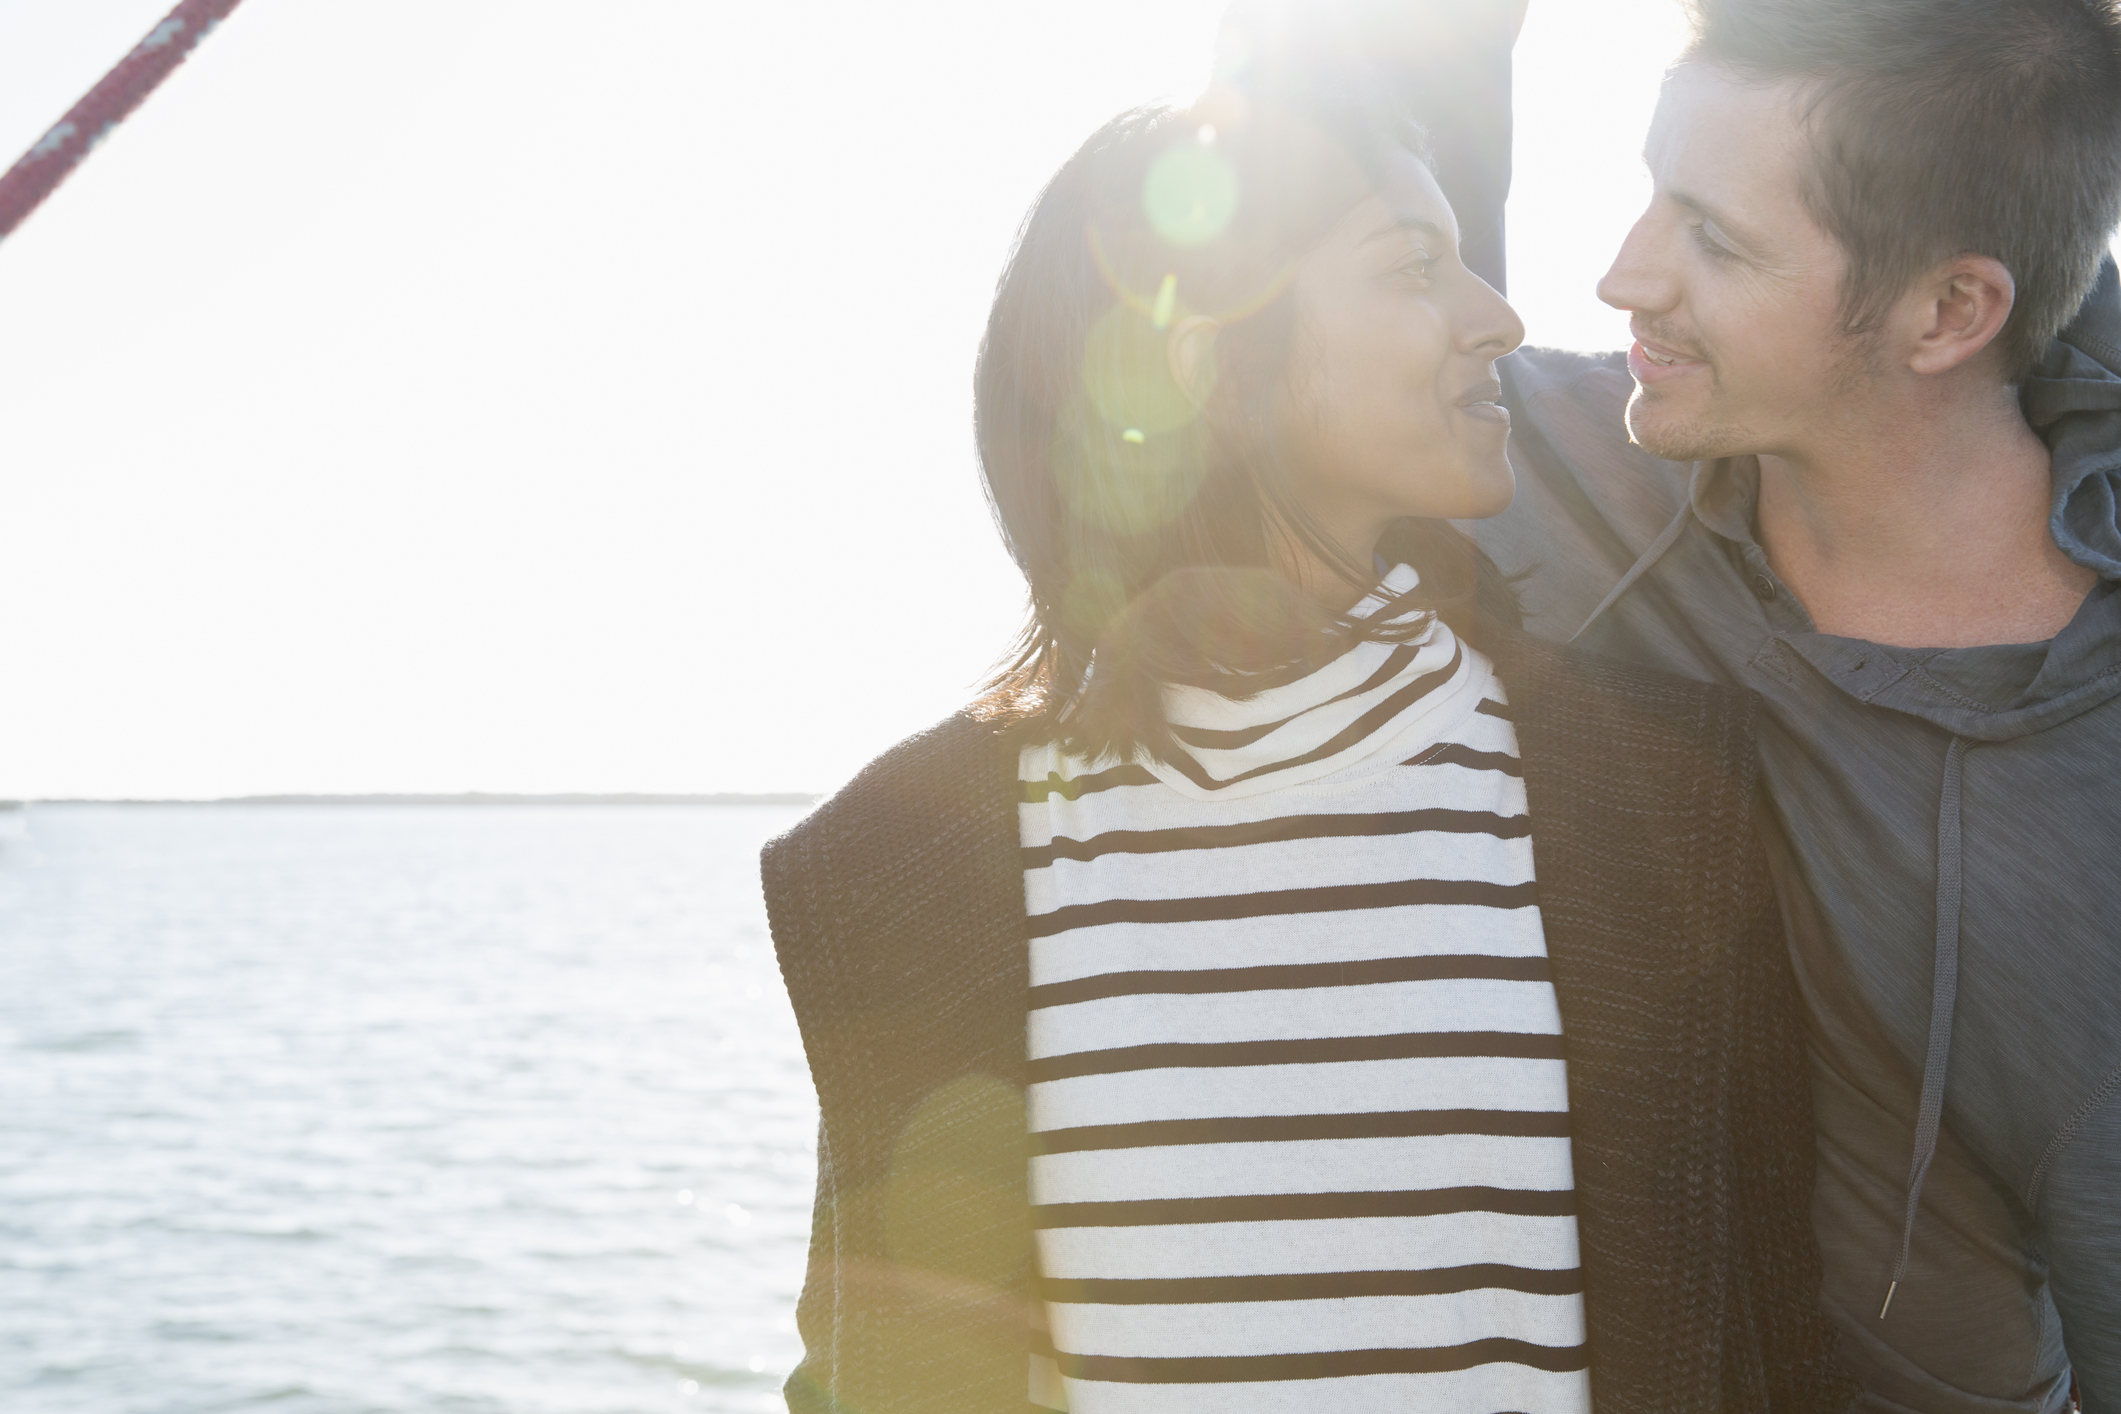 30 questions to ask a guy you re dating to get to know him better